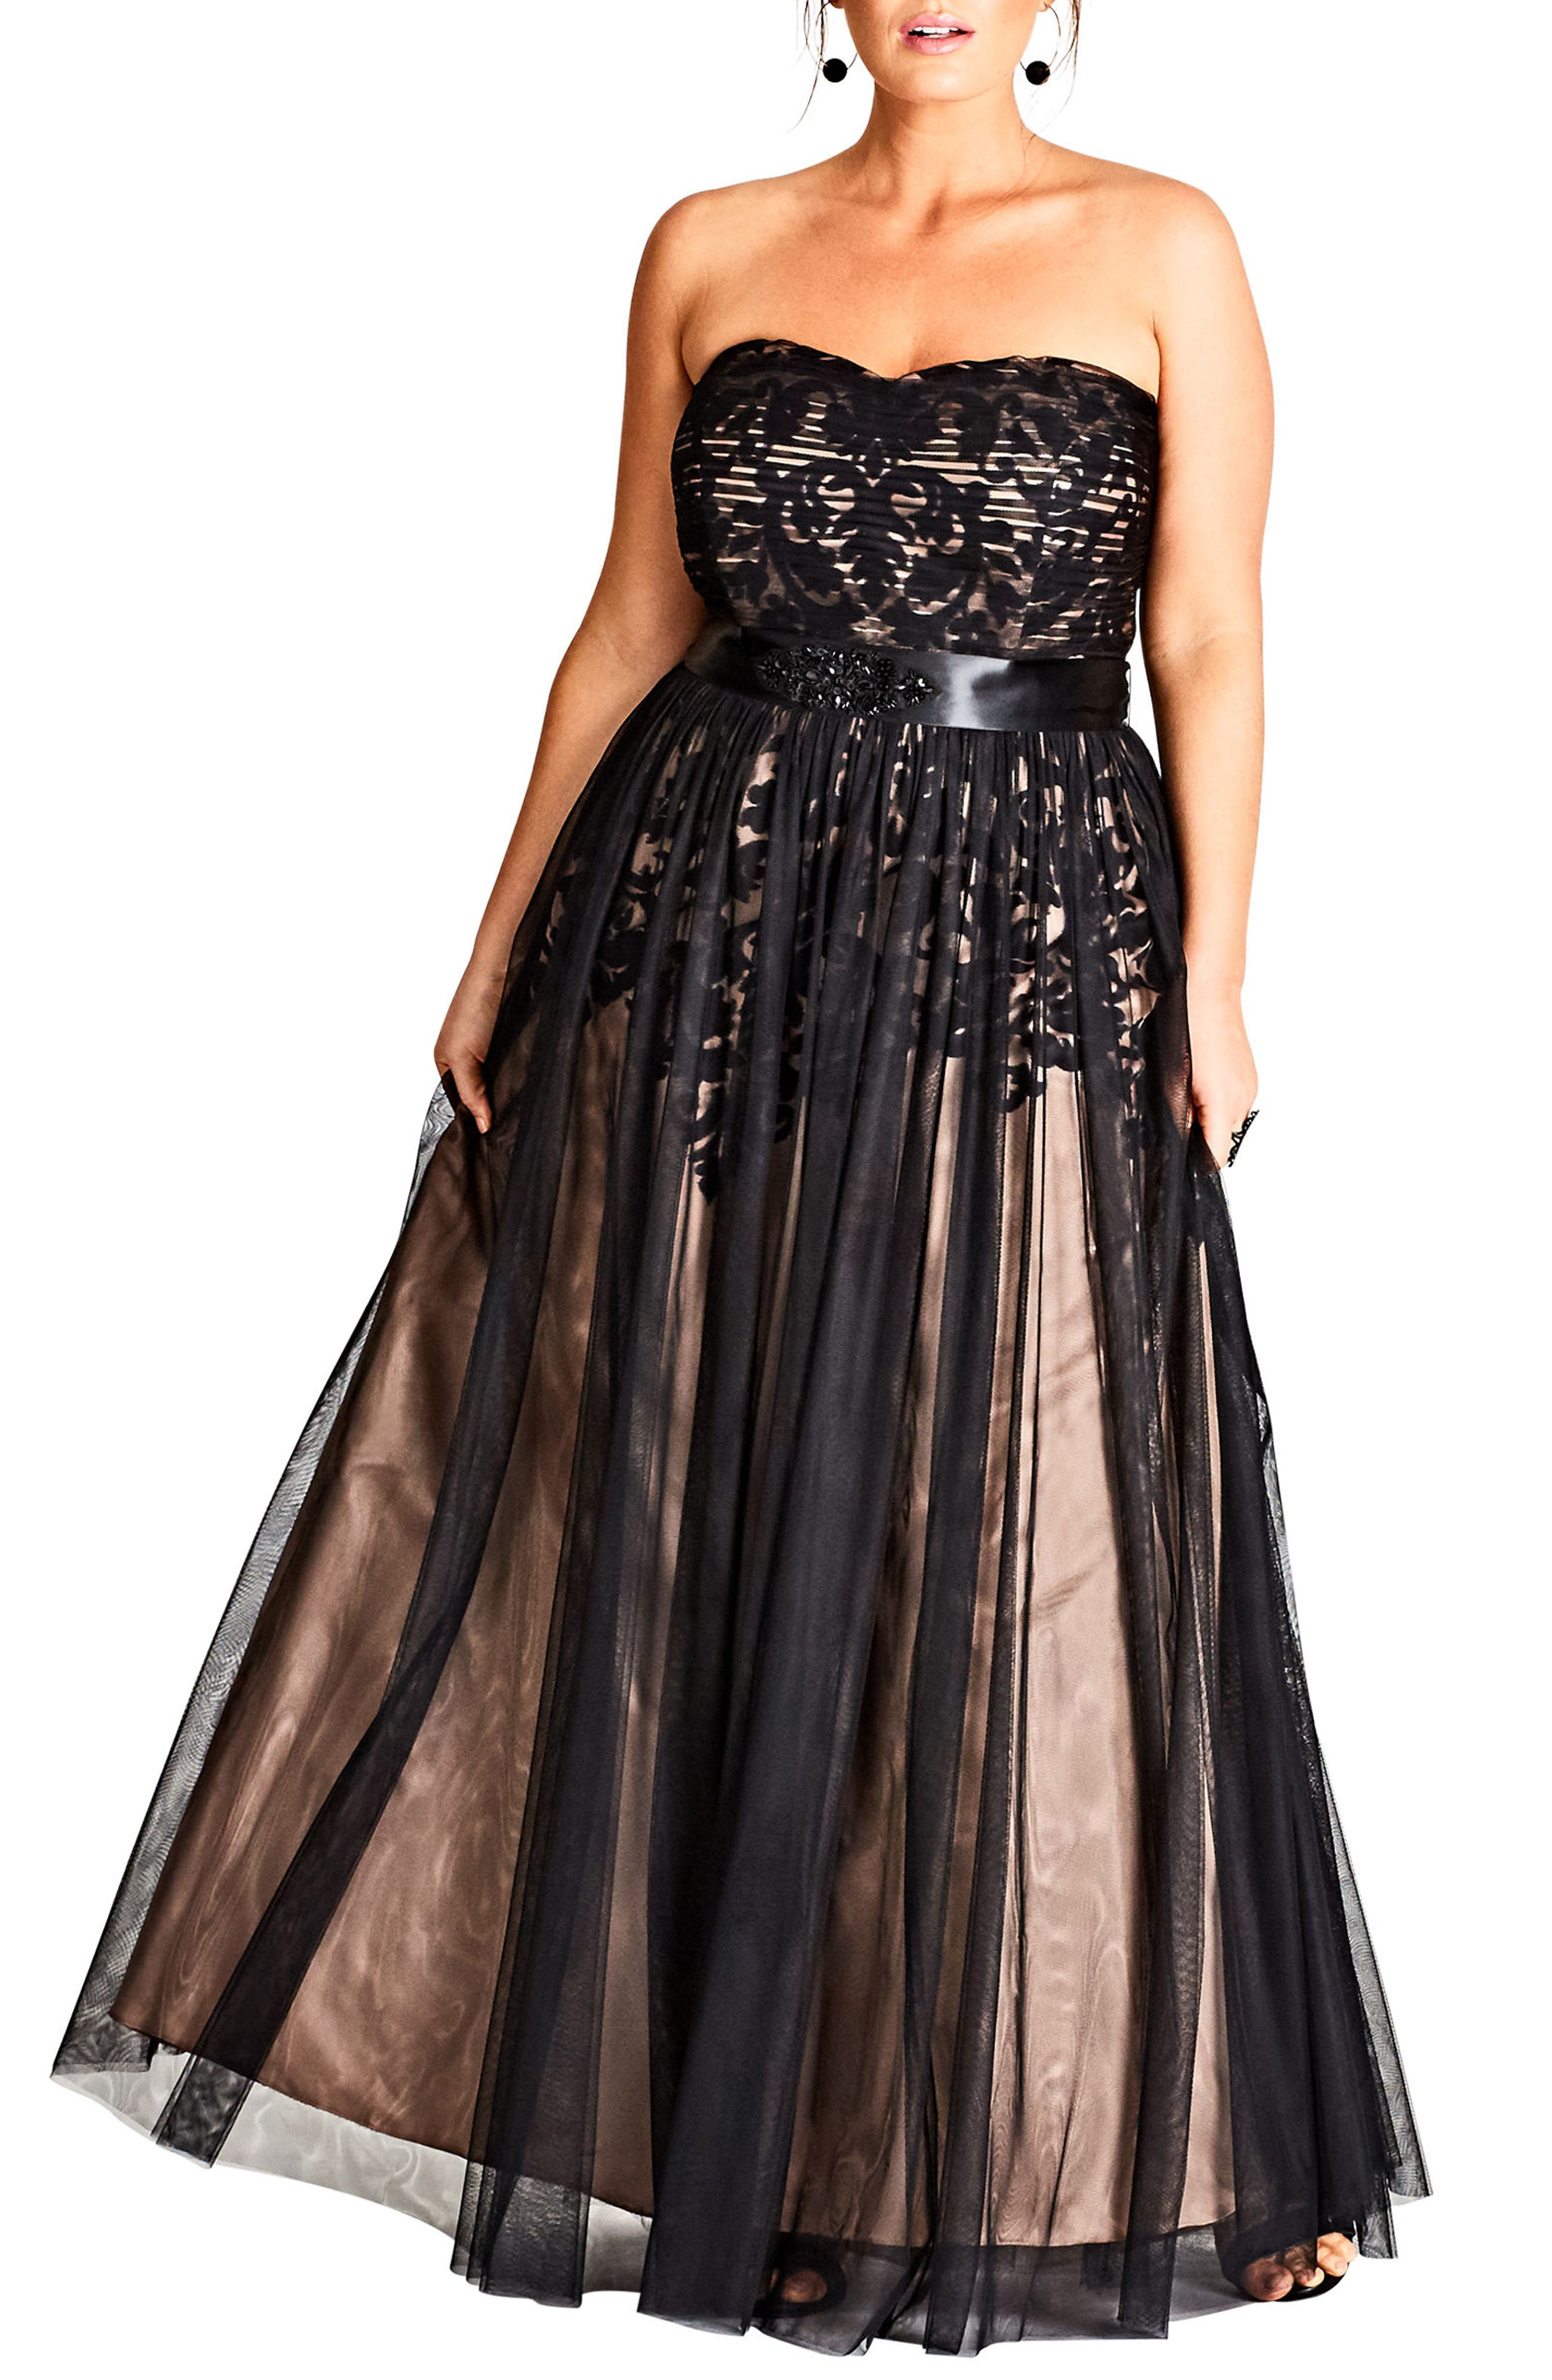 Alternate Image 1 Selected - City Chic Embellished Tulle Strapless Ballgown (Plus Size)